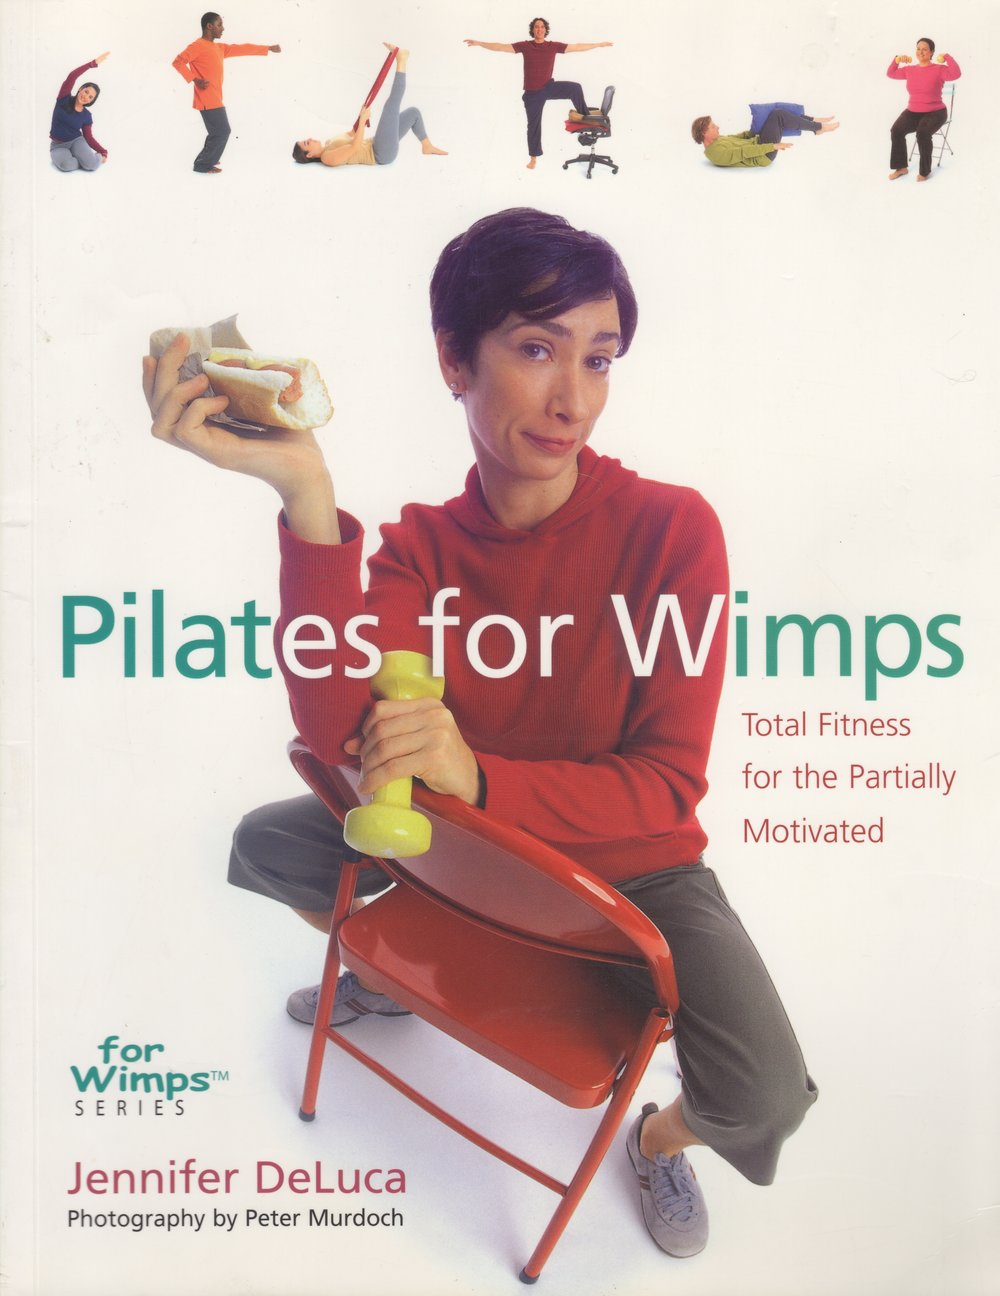 Pilates For Wimps by Jennifer DeLuca